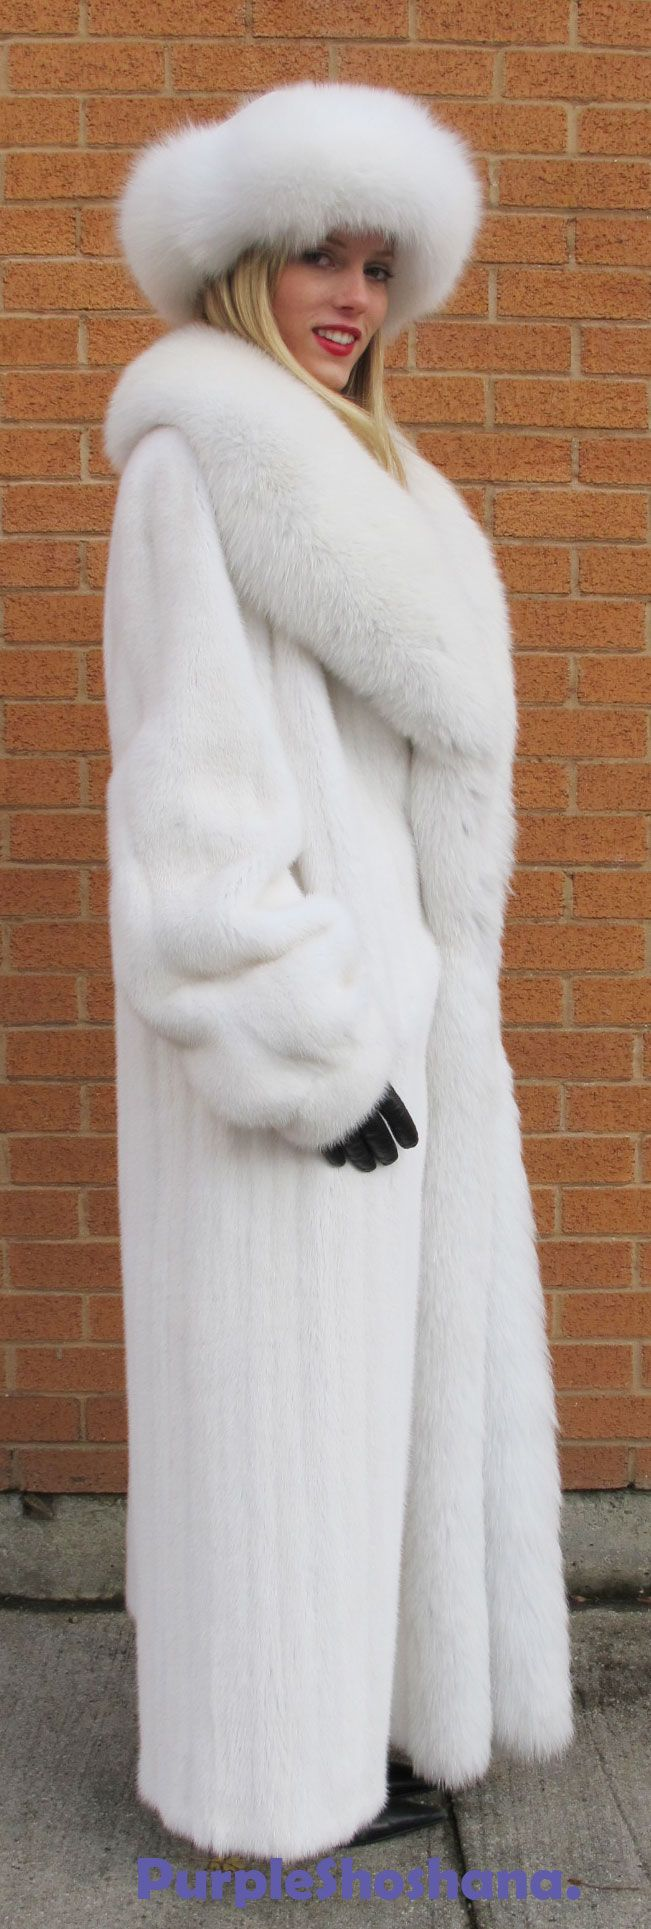 120 best fur coats images on Pinterest